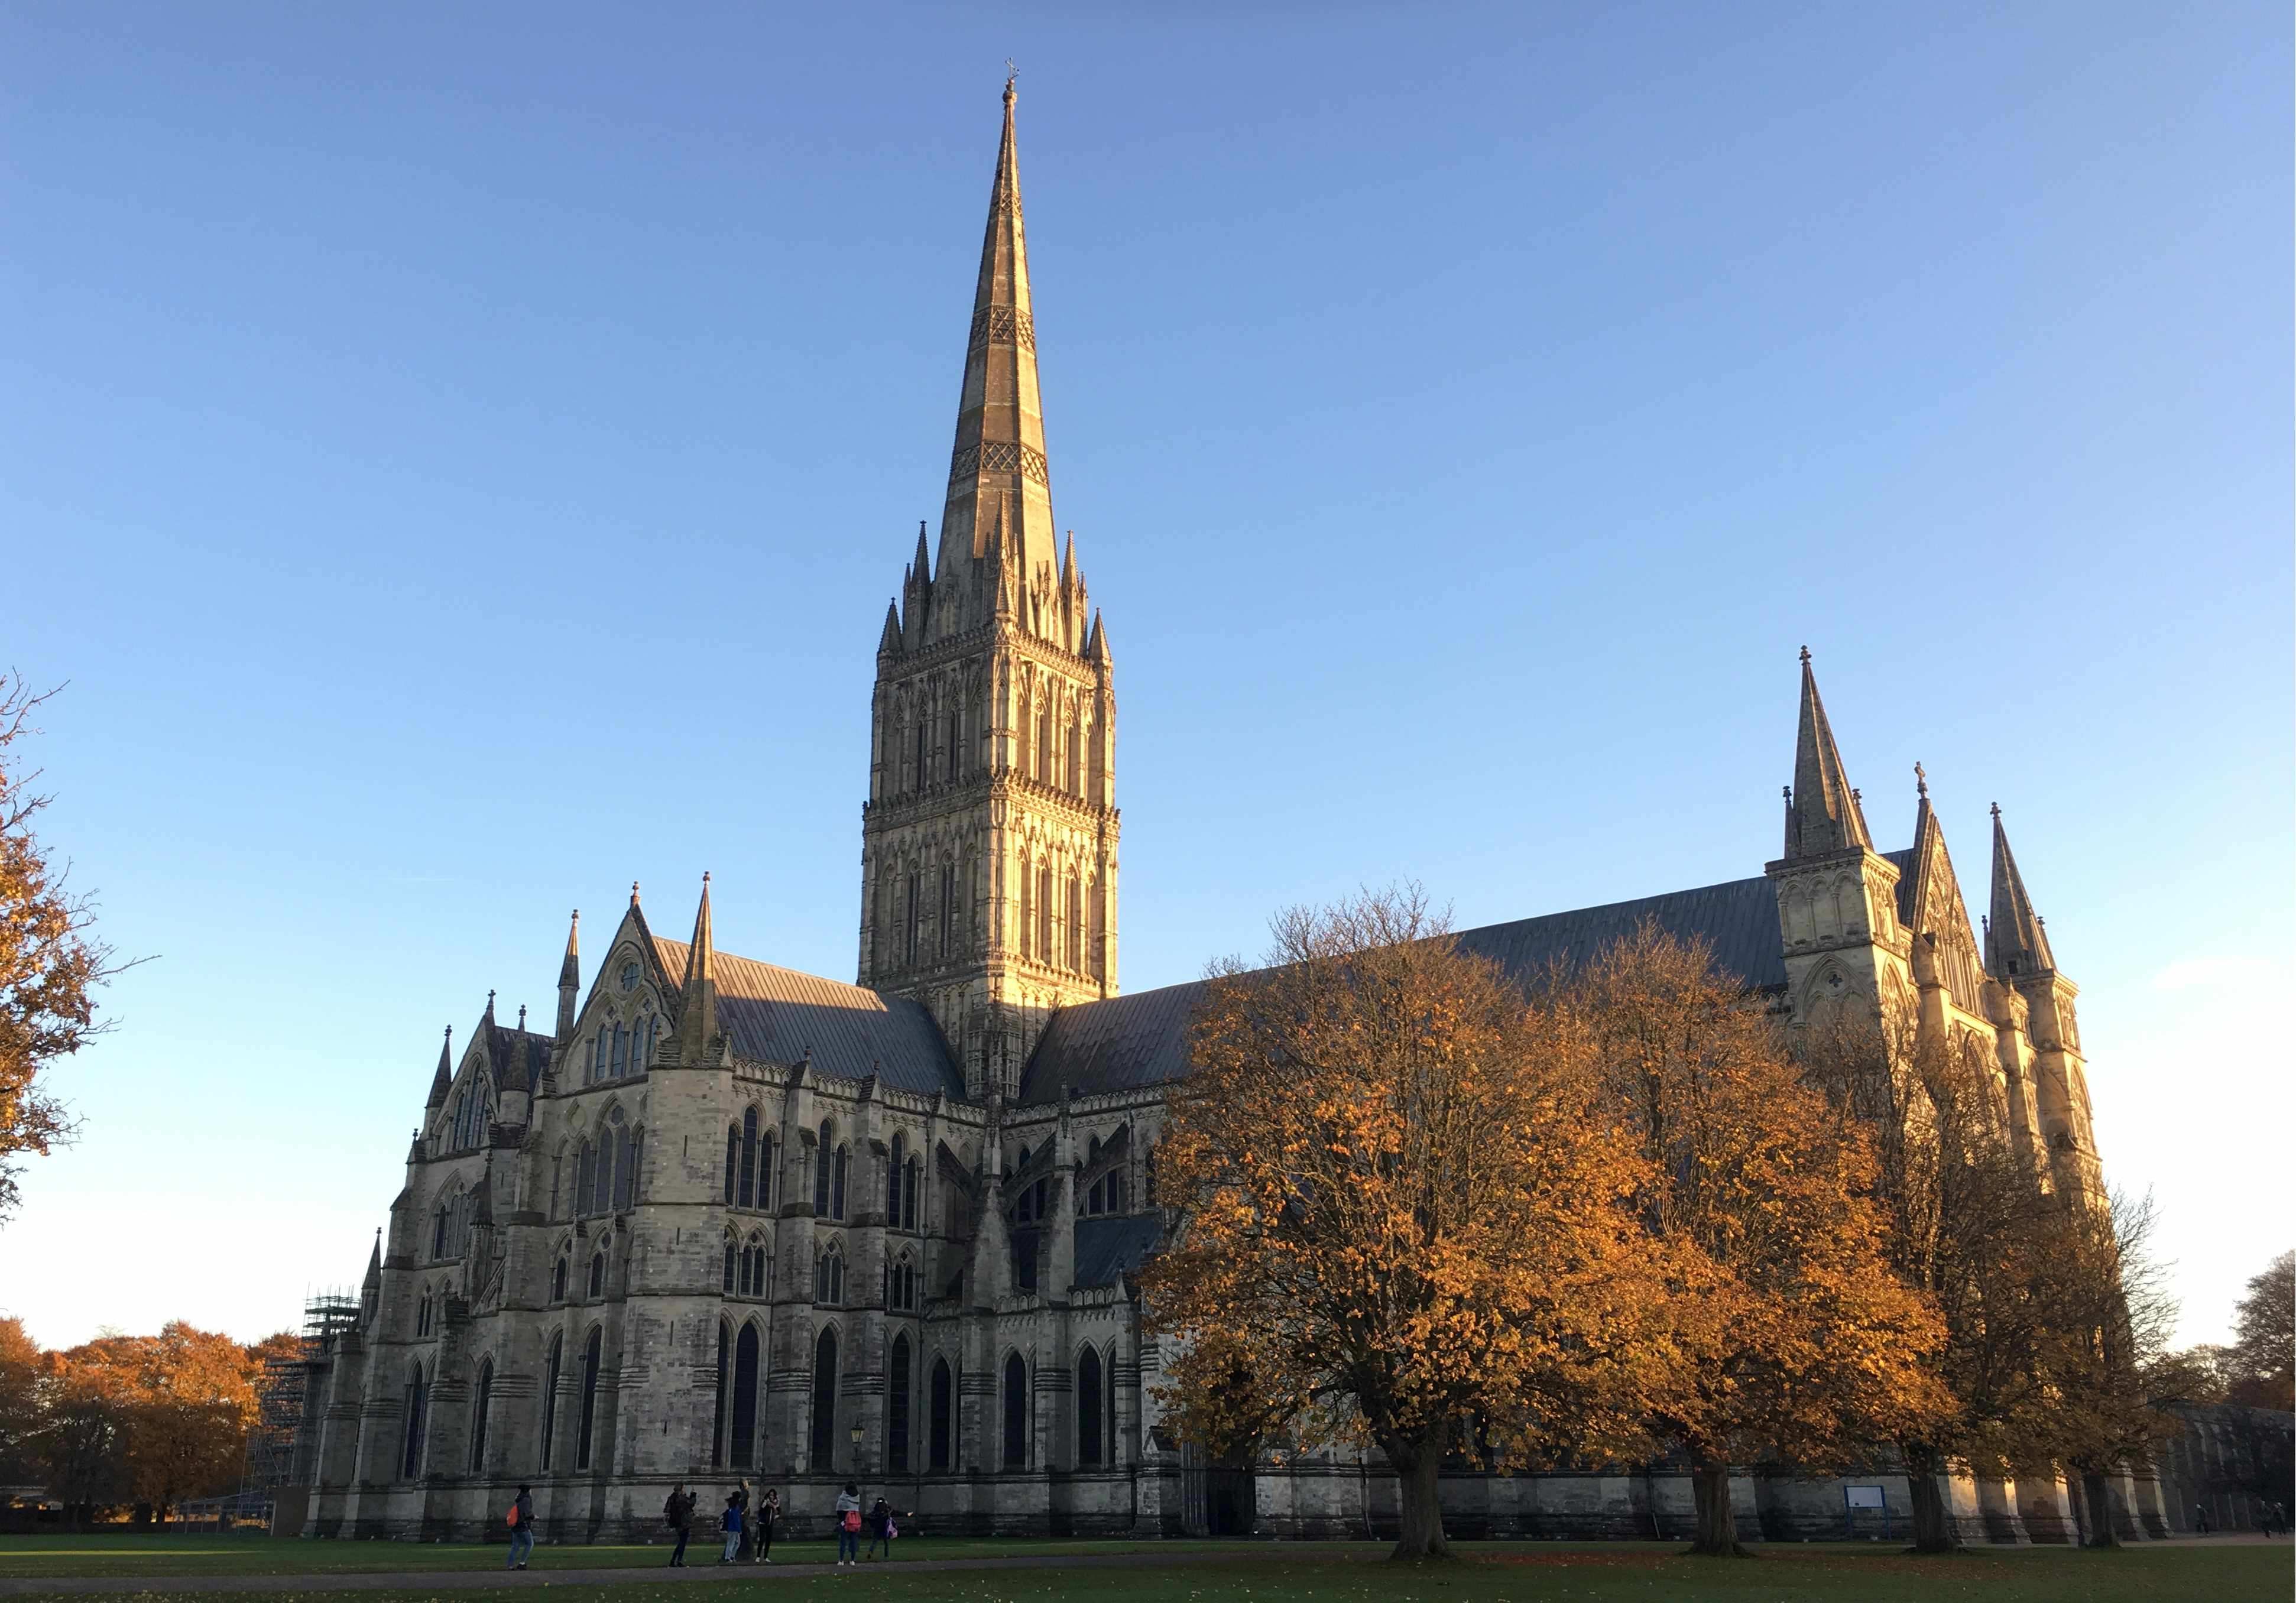 SOUTH WEST ENGLAND, UNITED KINGDOM: Picutred in this file image dated November 12, 2017, is the Cathedral Church of the Blessed Virgin Mary (Salisbury Cathedral) designed in the Early English Gothic style and built in the 13th century, in the city of Salisbury, Wiltshire; suspected of poisoning former Russian military intelligence serviceman Sergei Skripal and his daughter Yulia on March 4, 2018, Russian citizens Alexander Petrov and Ruslan Boshirov claim in an RT interview they travelled to Salisbury as tourists, in particular to visit the Salibsury Cathedral. Ilya Dmitryachev/TASS (Photo by Ilya DmitryachevTASS via Getty Images)